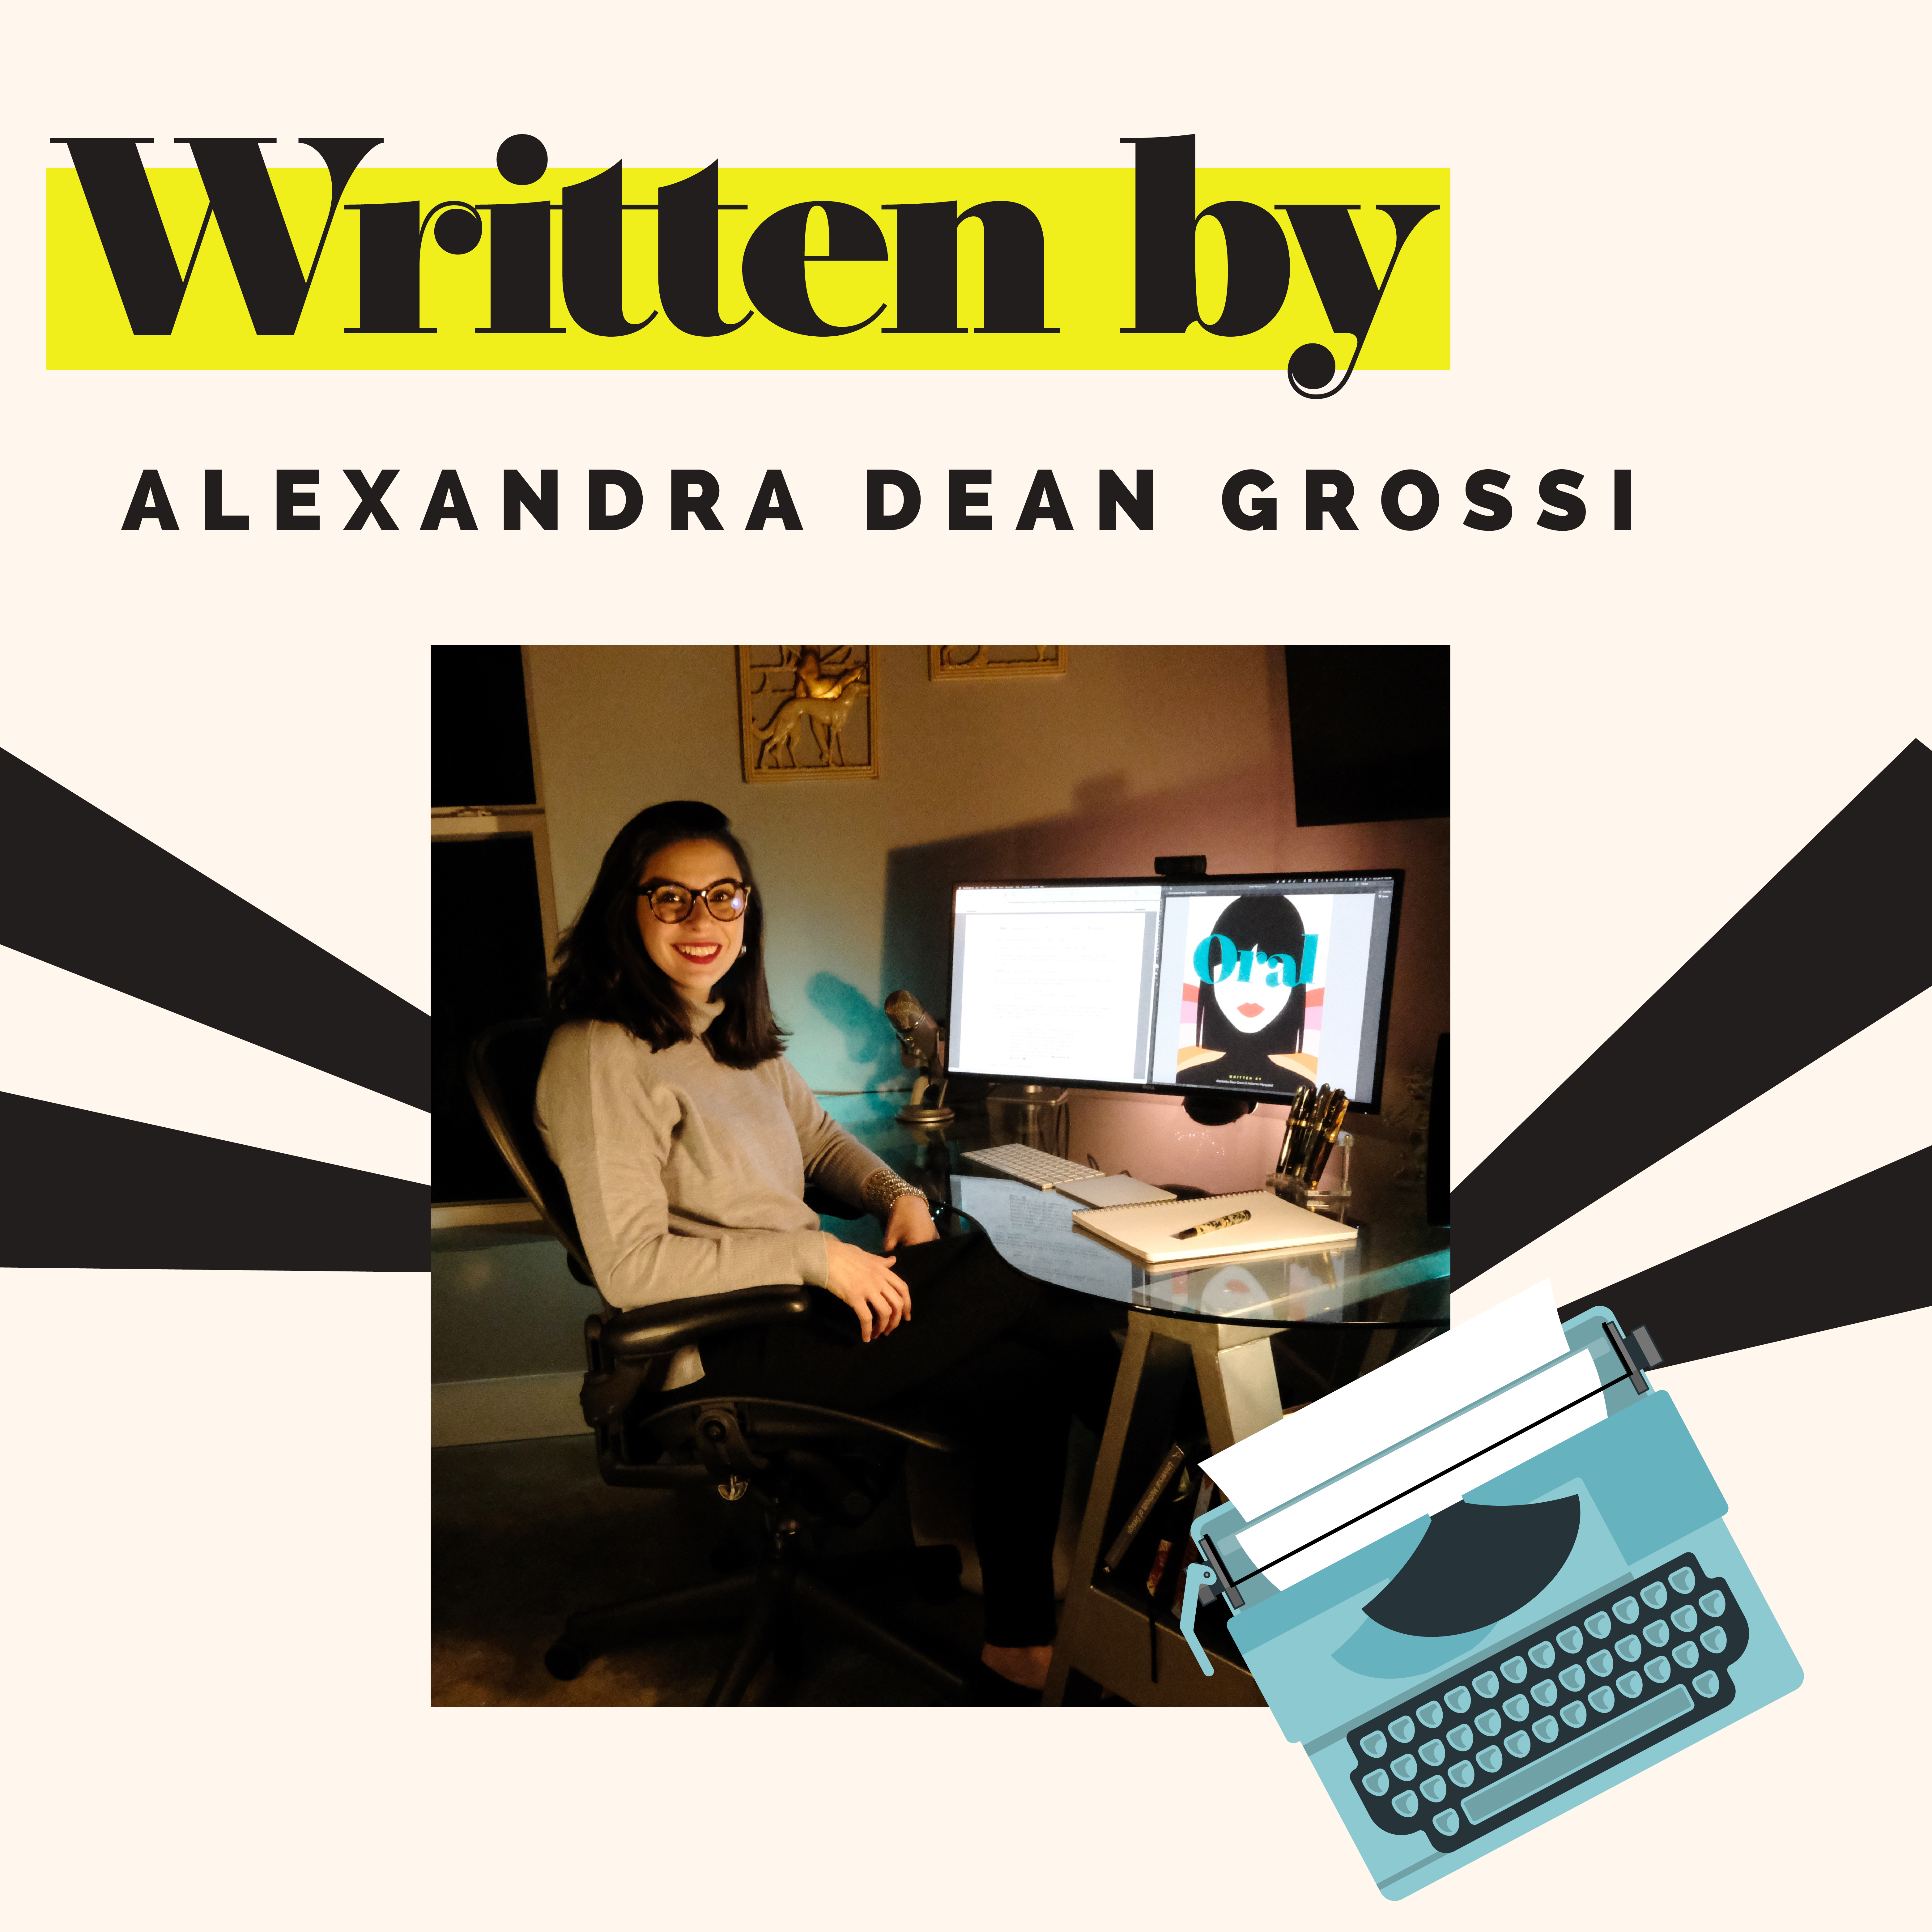 """The headline reads """"Written by Alexandra Dean Grossi."""" In the center is a picture of a dark haired woman wearing glasses and seated at her computer. Stylized graphics around the images include black and white stripes and a teal typewriter."""